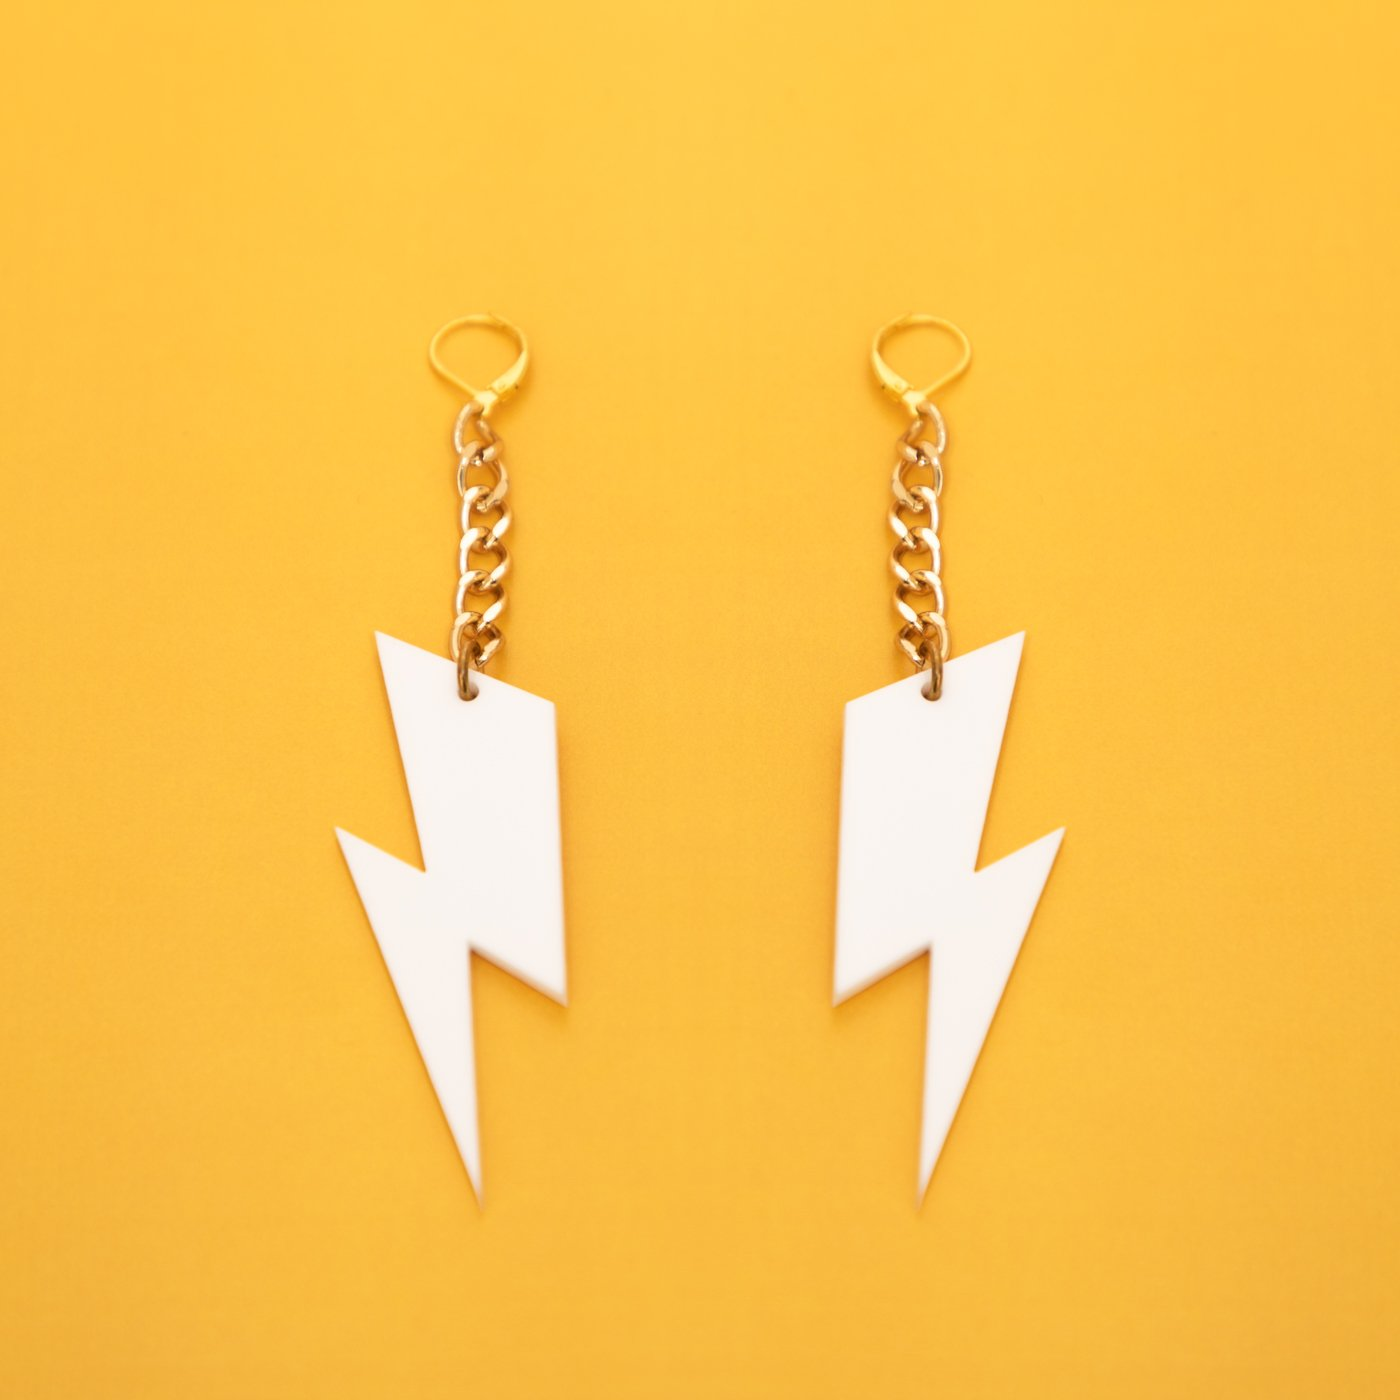 MindFlowers_Ziggy_White_Gold_Chain_Earrings_1024x1024@2x.jpg